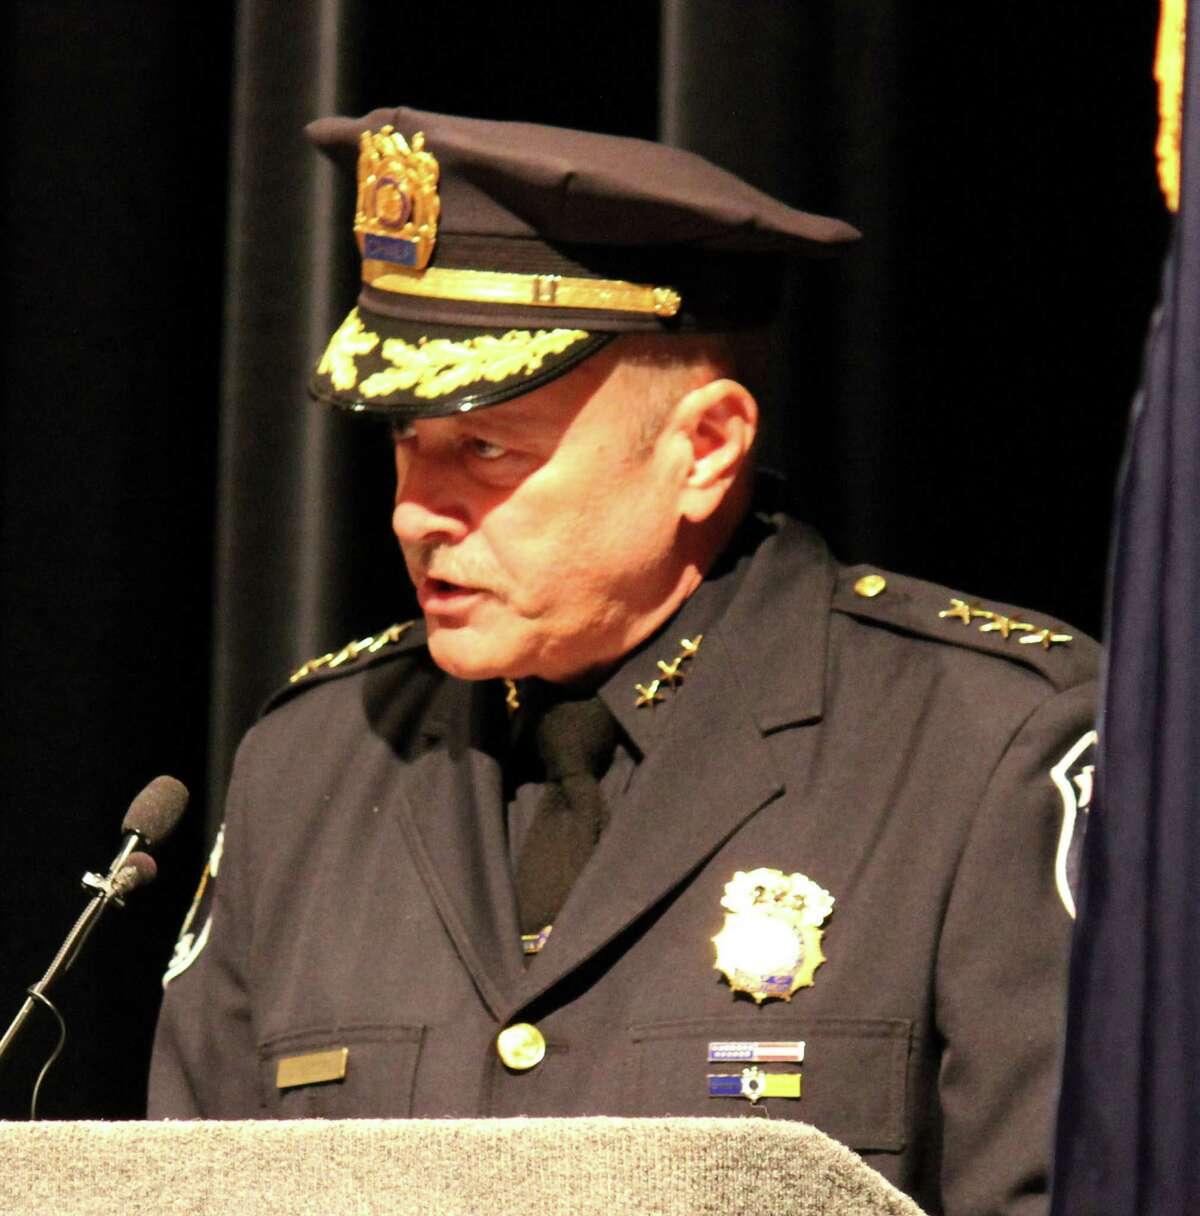 Chief Louis Corsi of the Bethlehem Police Department addresses The Zone 5 Training Academy Session 56 graduates on Tuesday morning, July 1, 2014 at Schenectady County Community College in Schenectady N.Y. (Selby Smith / Special to the Times Union)